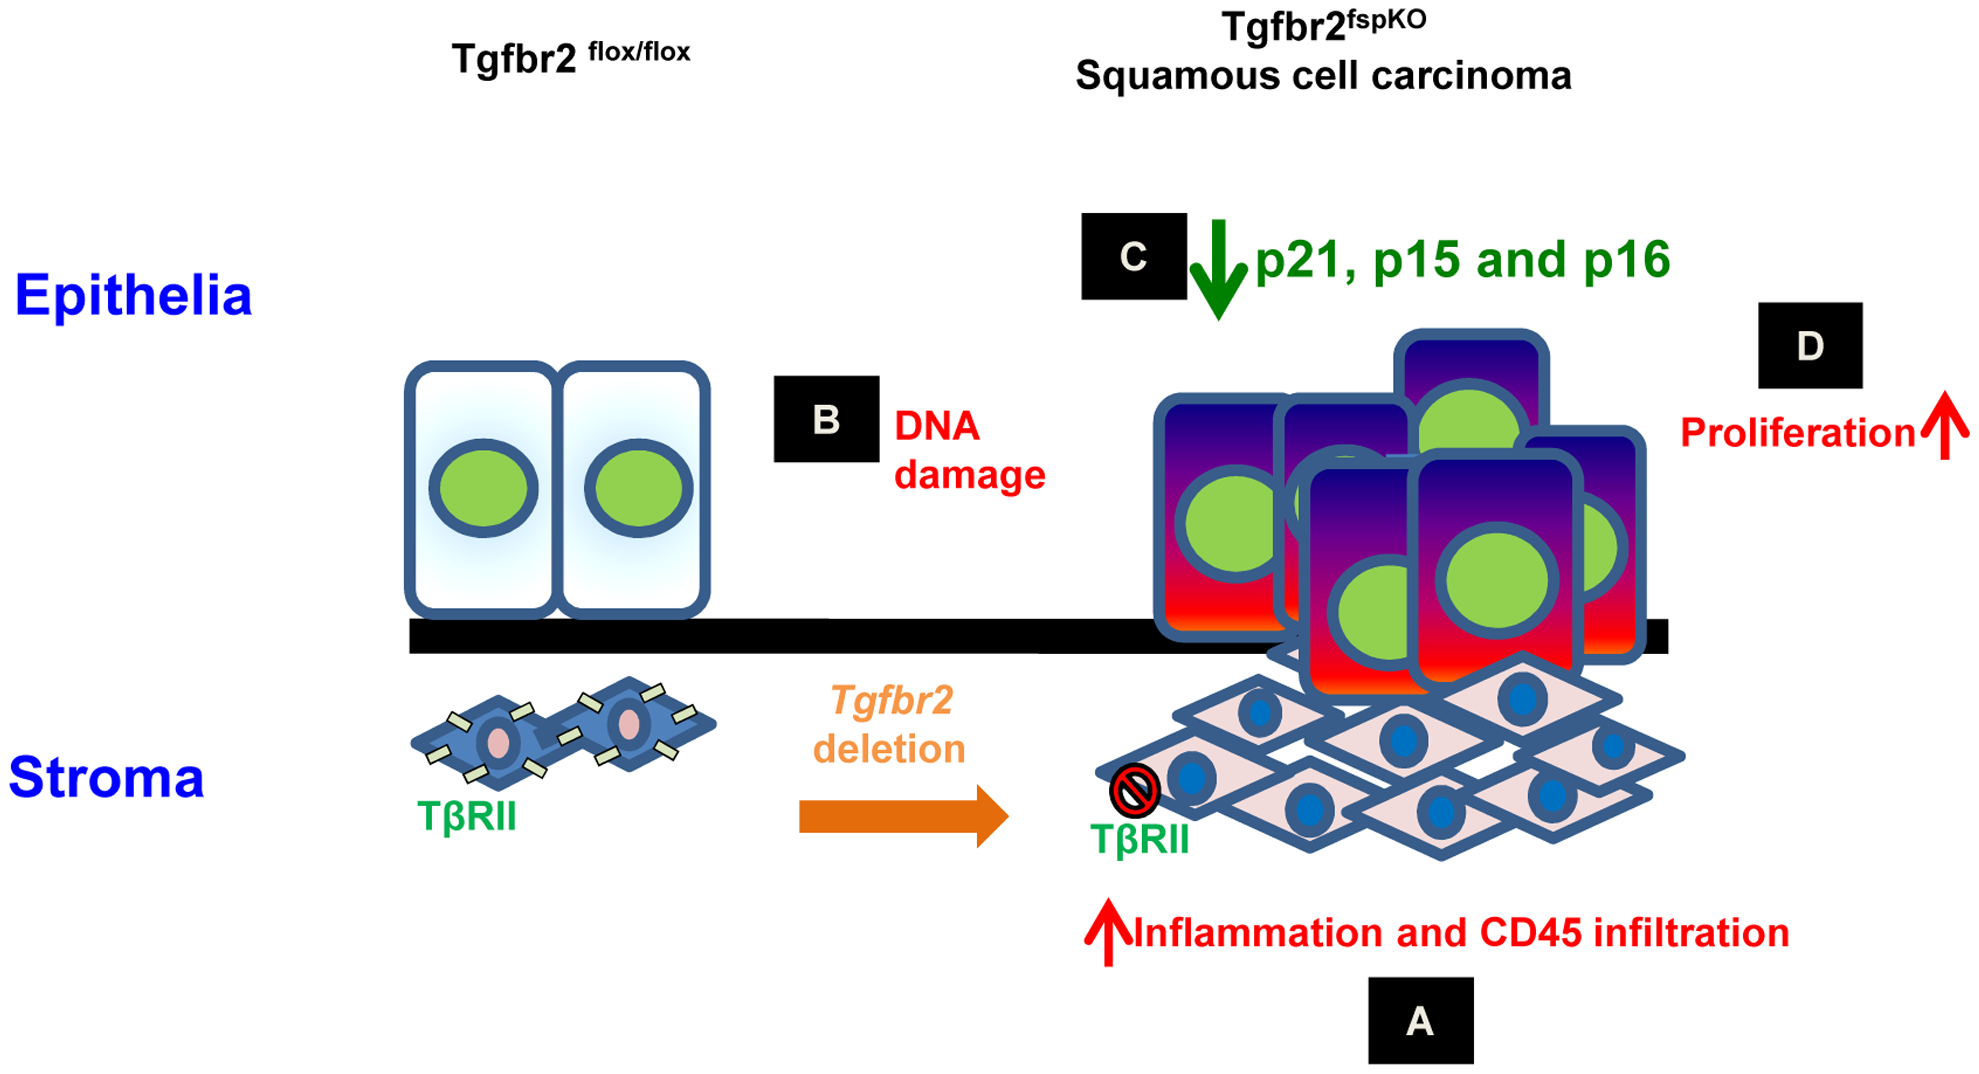 Schematic hypothesis for the development of forestomach SCC due to loss of <i>Tgfbr2</i> in stromal fibroblasts.